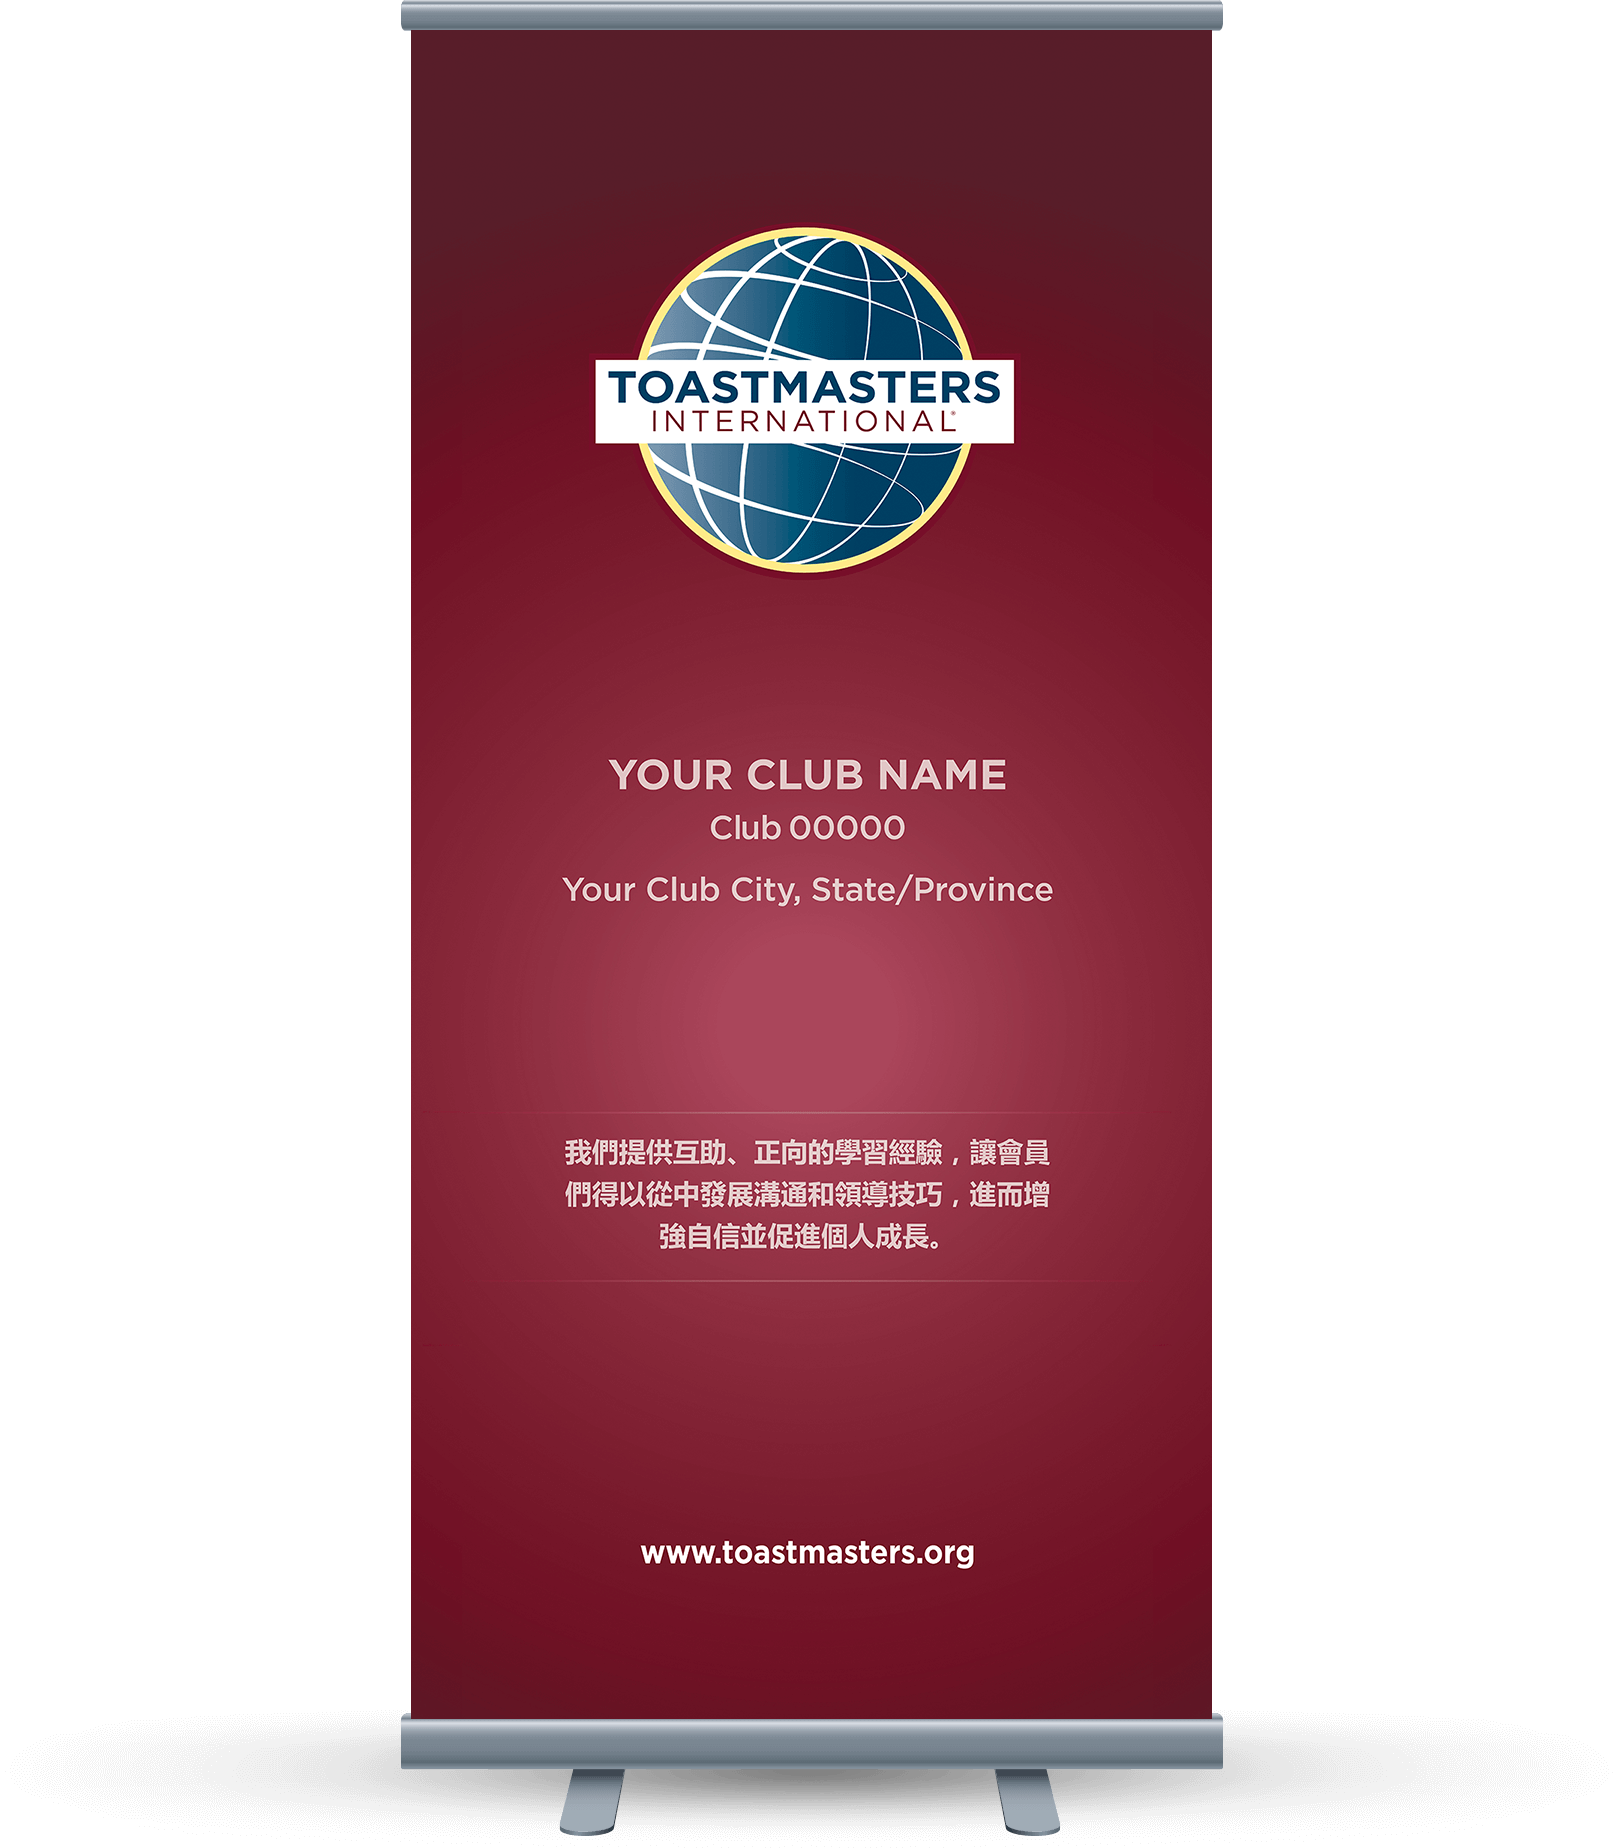 Custom-Club-Banner-Traditional-Chinese-Toastmasters-Burgundy